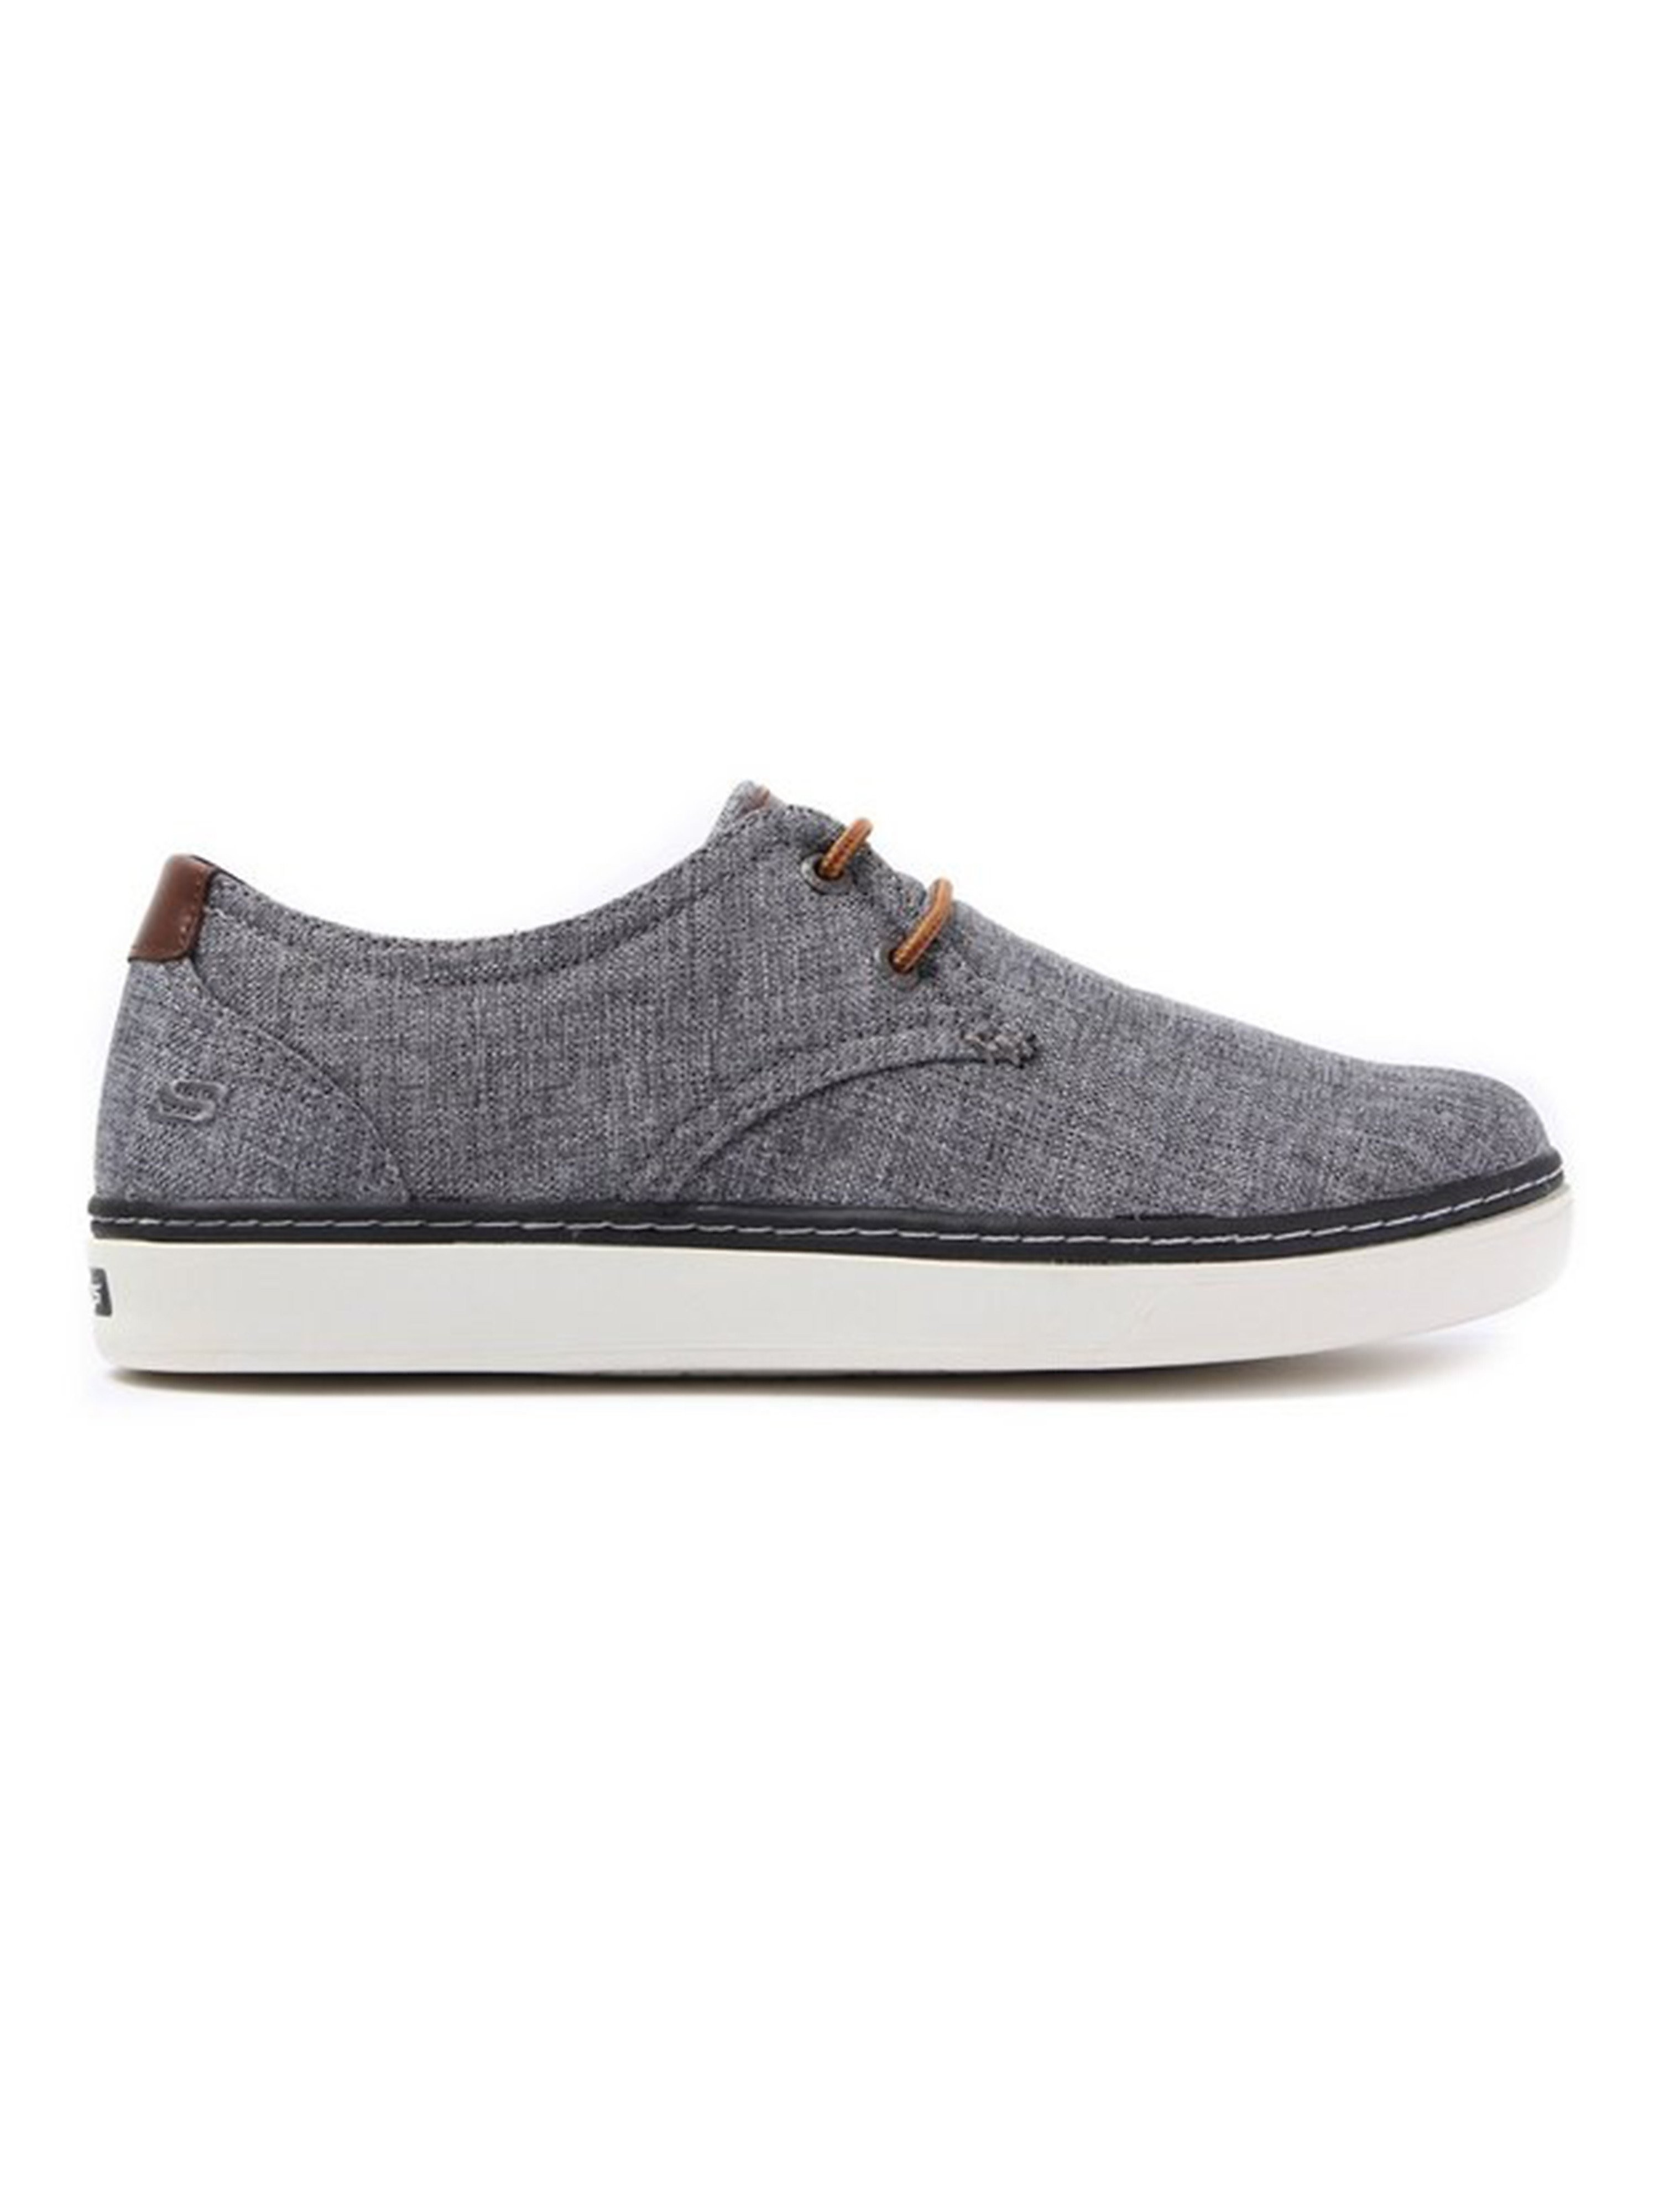 Skechers Men's Palen Gadon Oxford Trainers - Grey